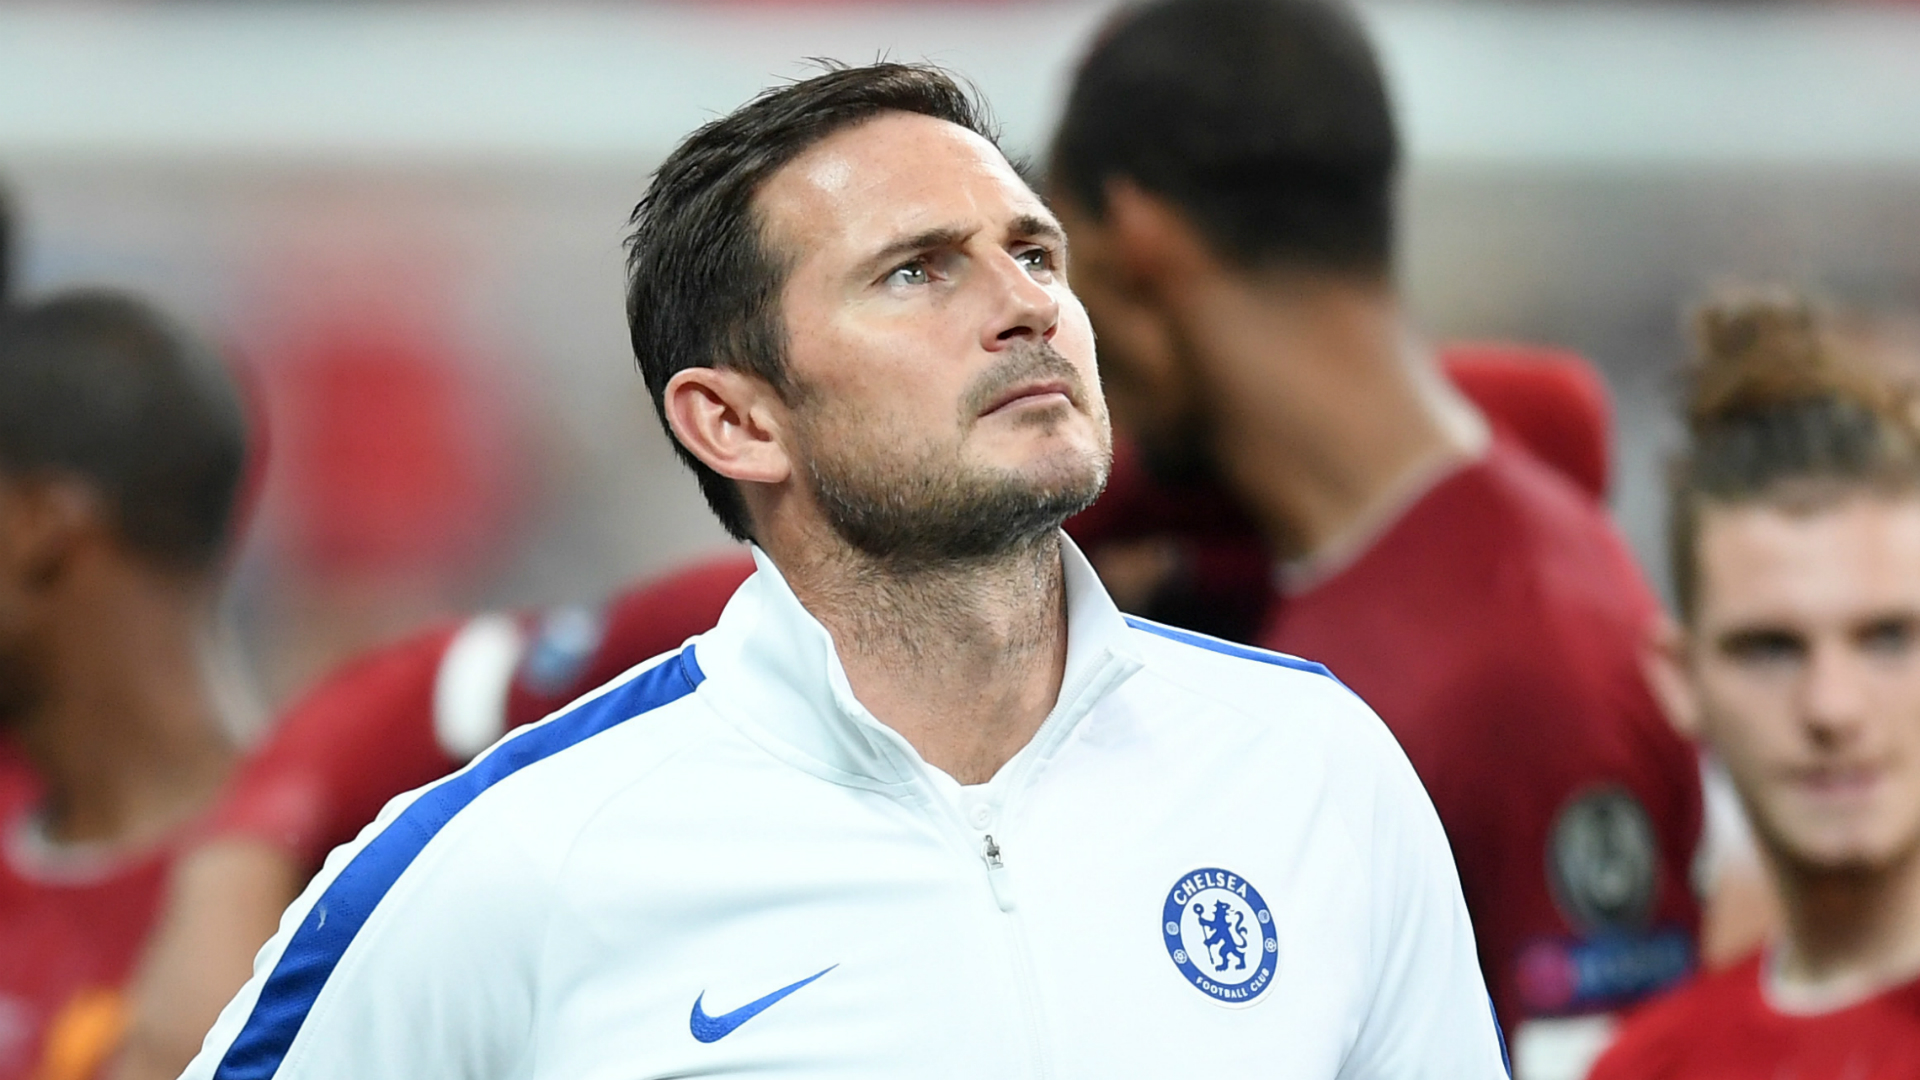 Chelsea fell 5-4 on penalties to Liverpool but head coach Frank Lampard was still satisfied with his side's UEFA Super Cup display.